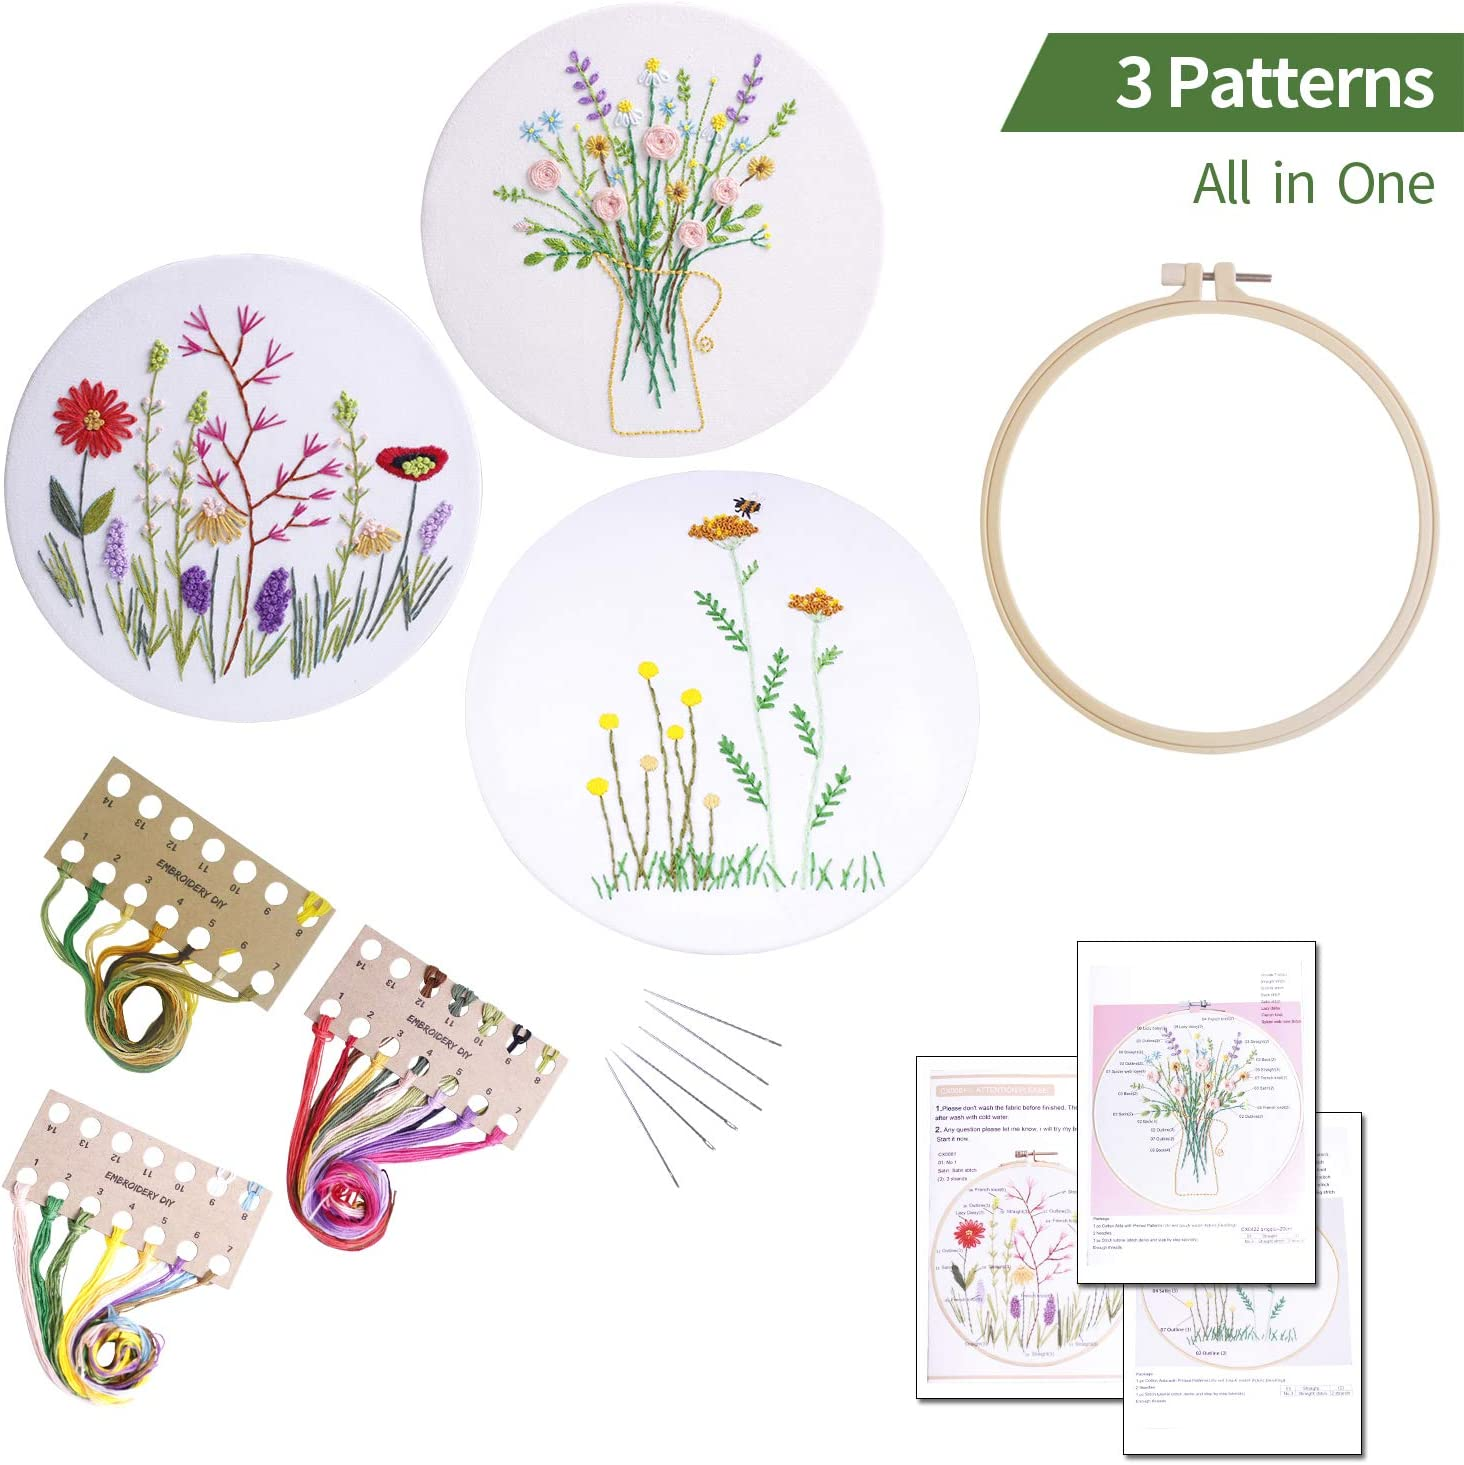 Hoop 3sets Stamped Embroidery Kit with Pattern Color Floss,Needle Kit1 DIY Stitch Set for Starter Art Craft Handy Sewing Include Printed Cloth